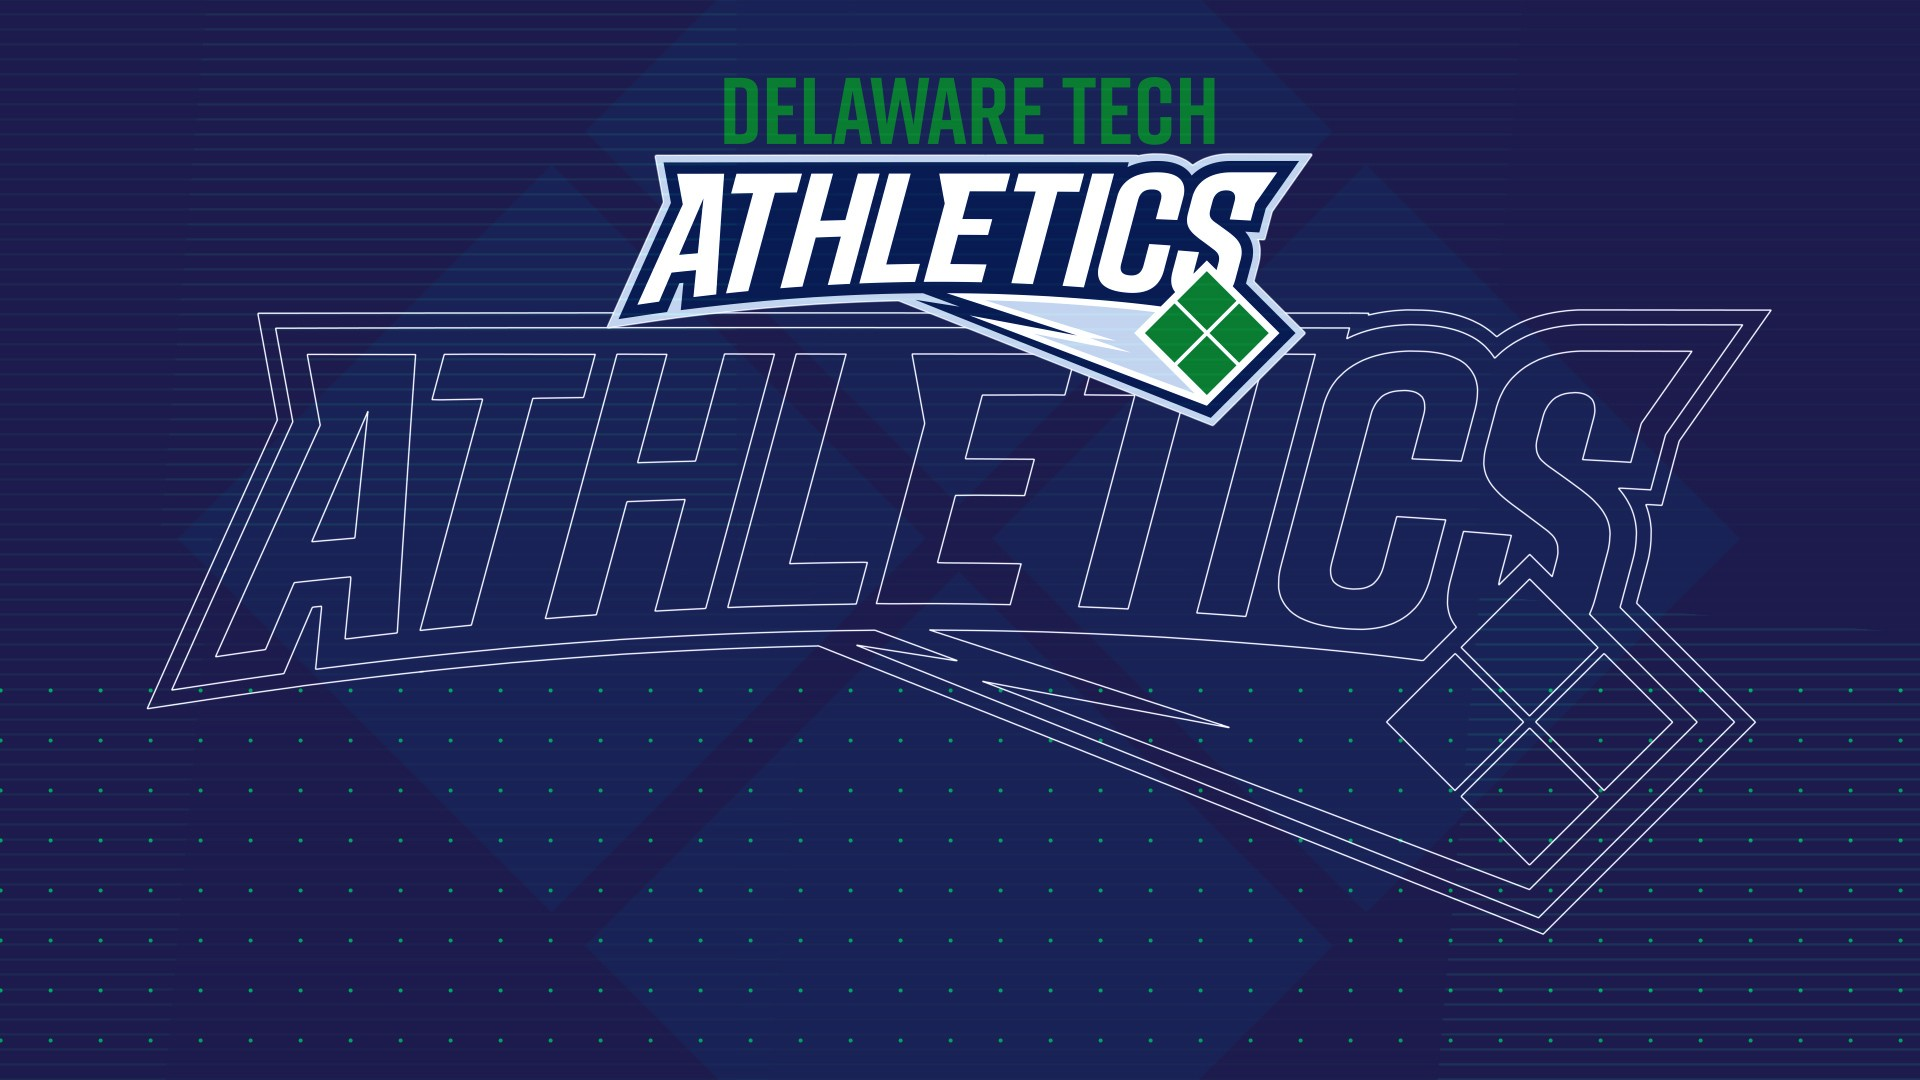 Delaware Tech Athletics Zoom Background Image Logo.